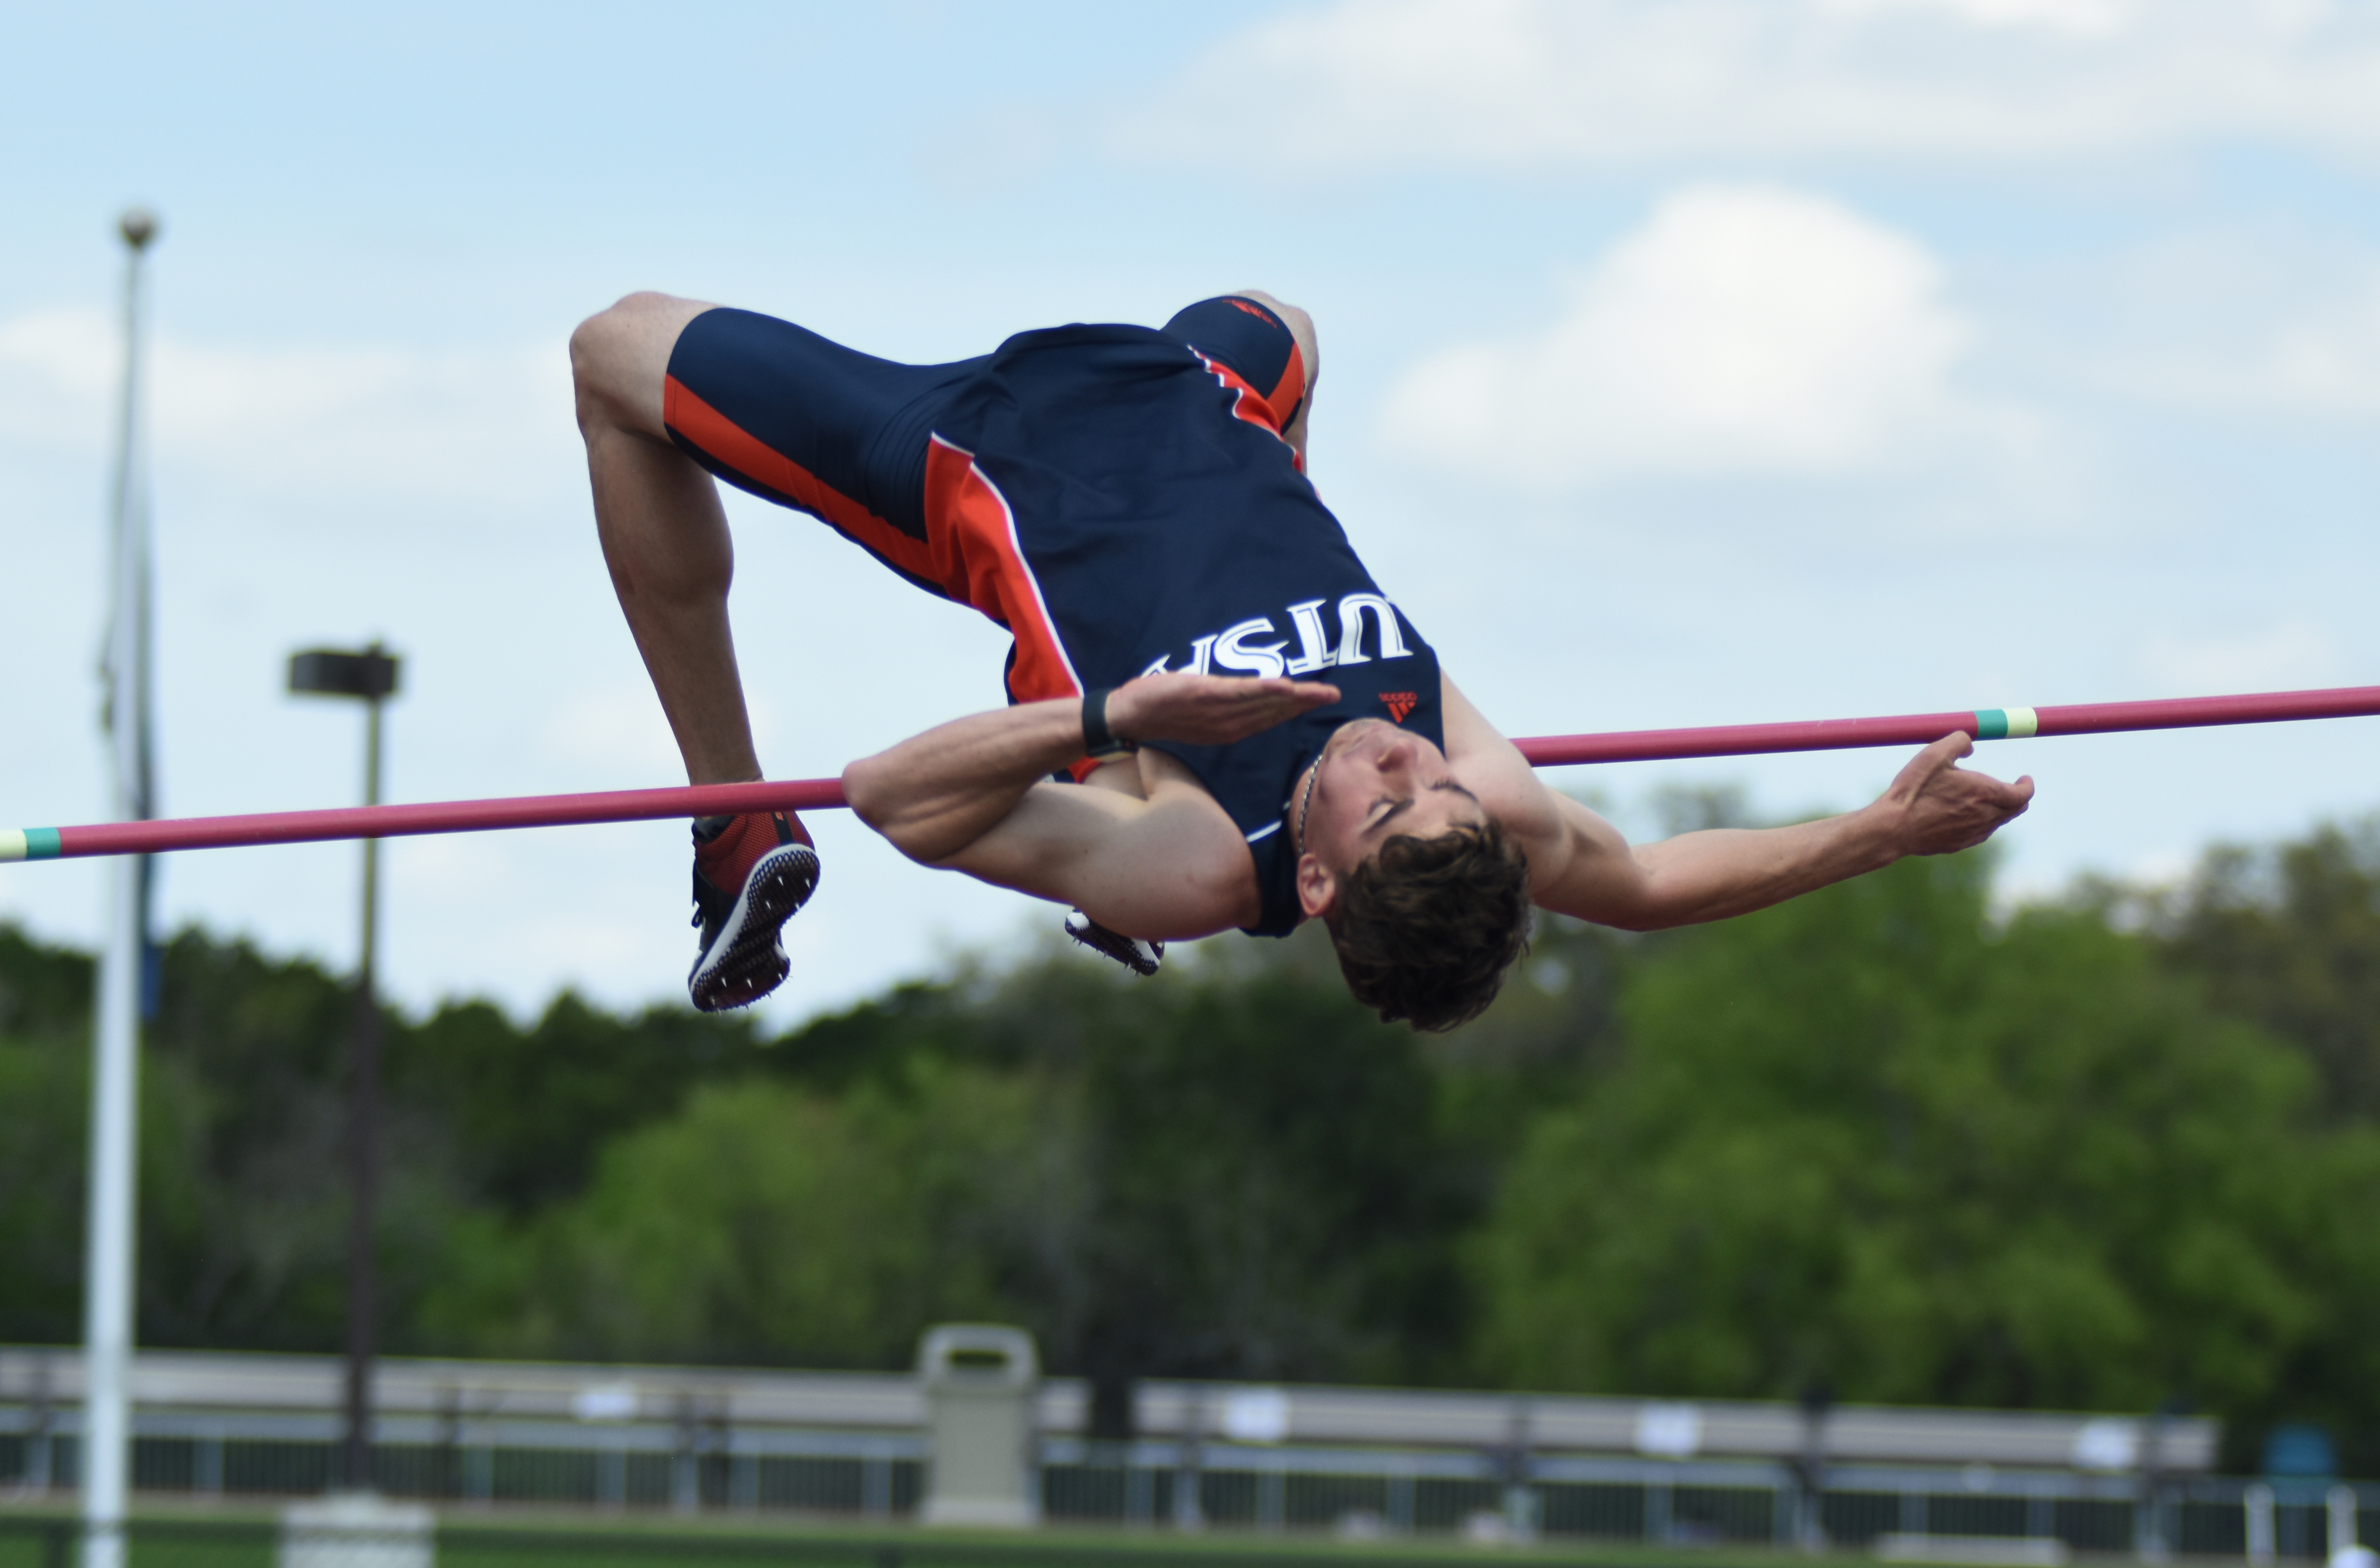 March 26 - April 2, 2019 sports@paisano-online.com | 7SportsRoadrunners jump-start their 2019 outdoor track season Jake McDaniel clears the high jump pole. Track defends at Roadrunner Invitational Jack Myer/The Paisano